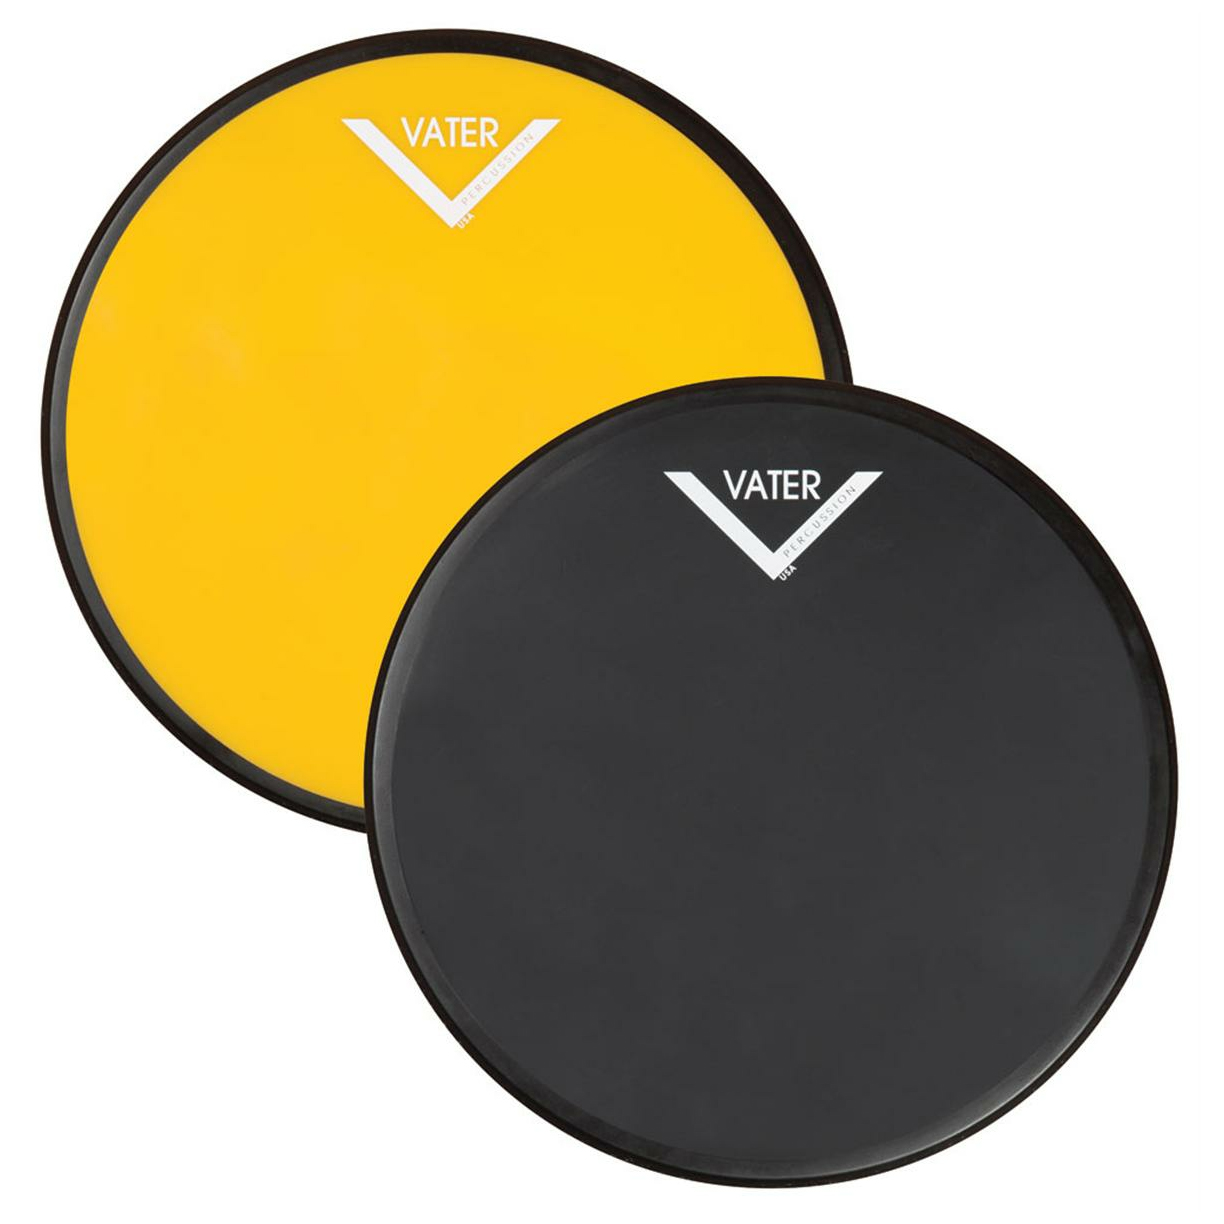 snare practice pads offworld vic firth lone star percussion. Black Bedroom Furniture Sets. Home Design Ideas